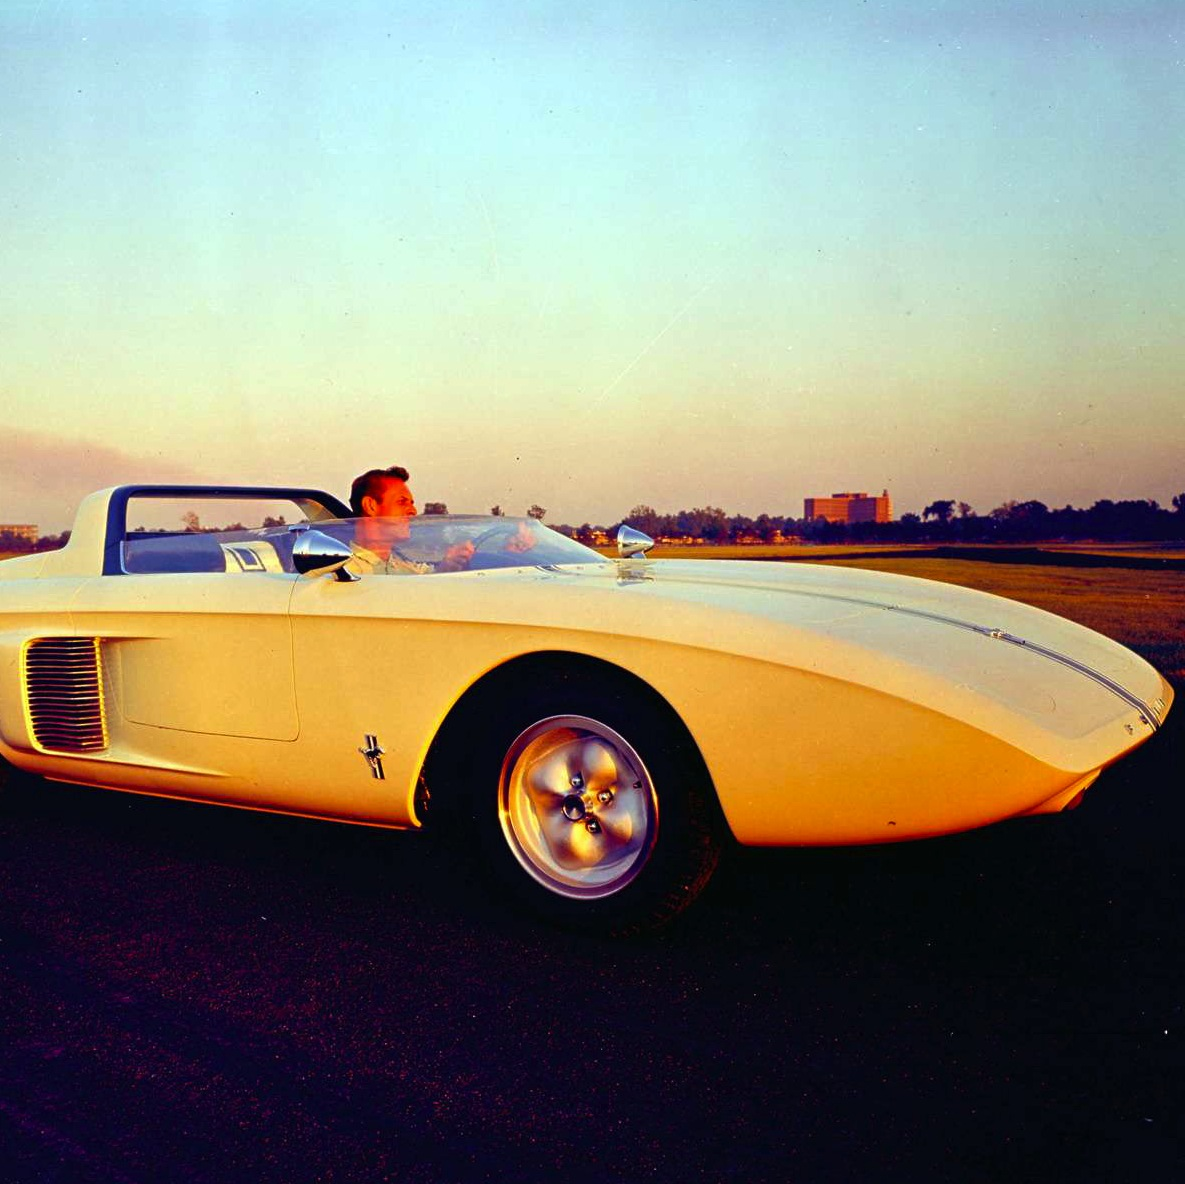 Ford_Mustang_Roadster_Concept_Car_1962